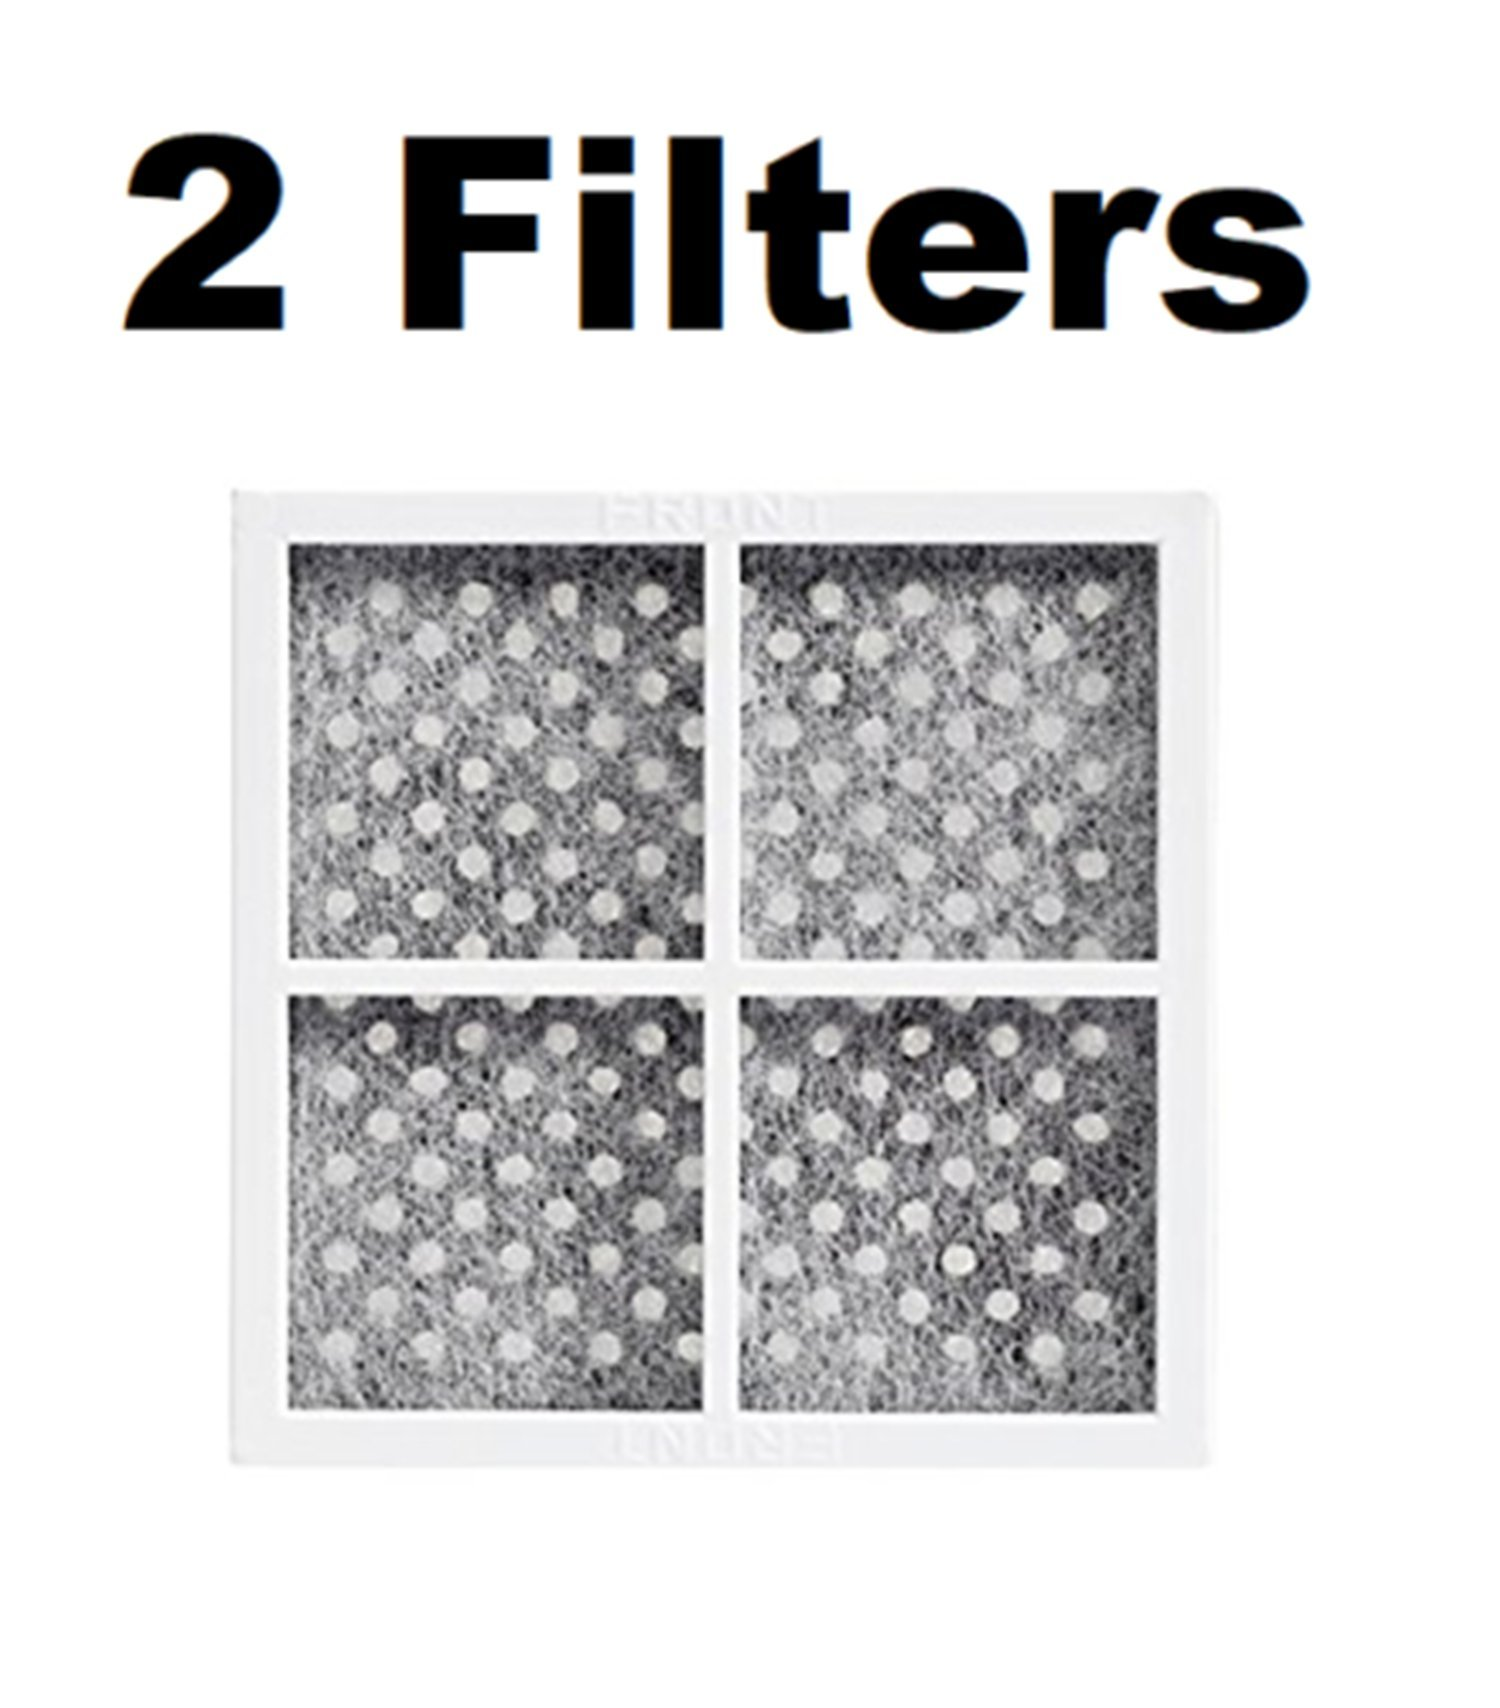 Fresh Air Replacement Refrigerator Air Filter for LG ADQ73214404 2 FILTERS by Pokin (Image #1)